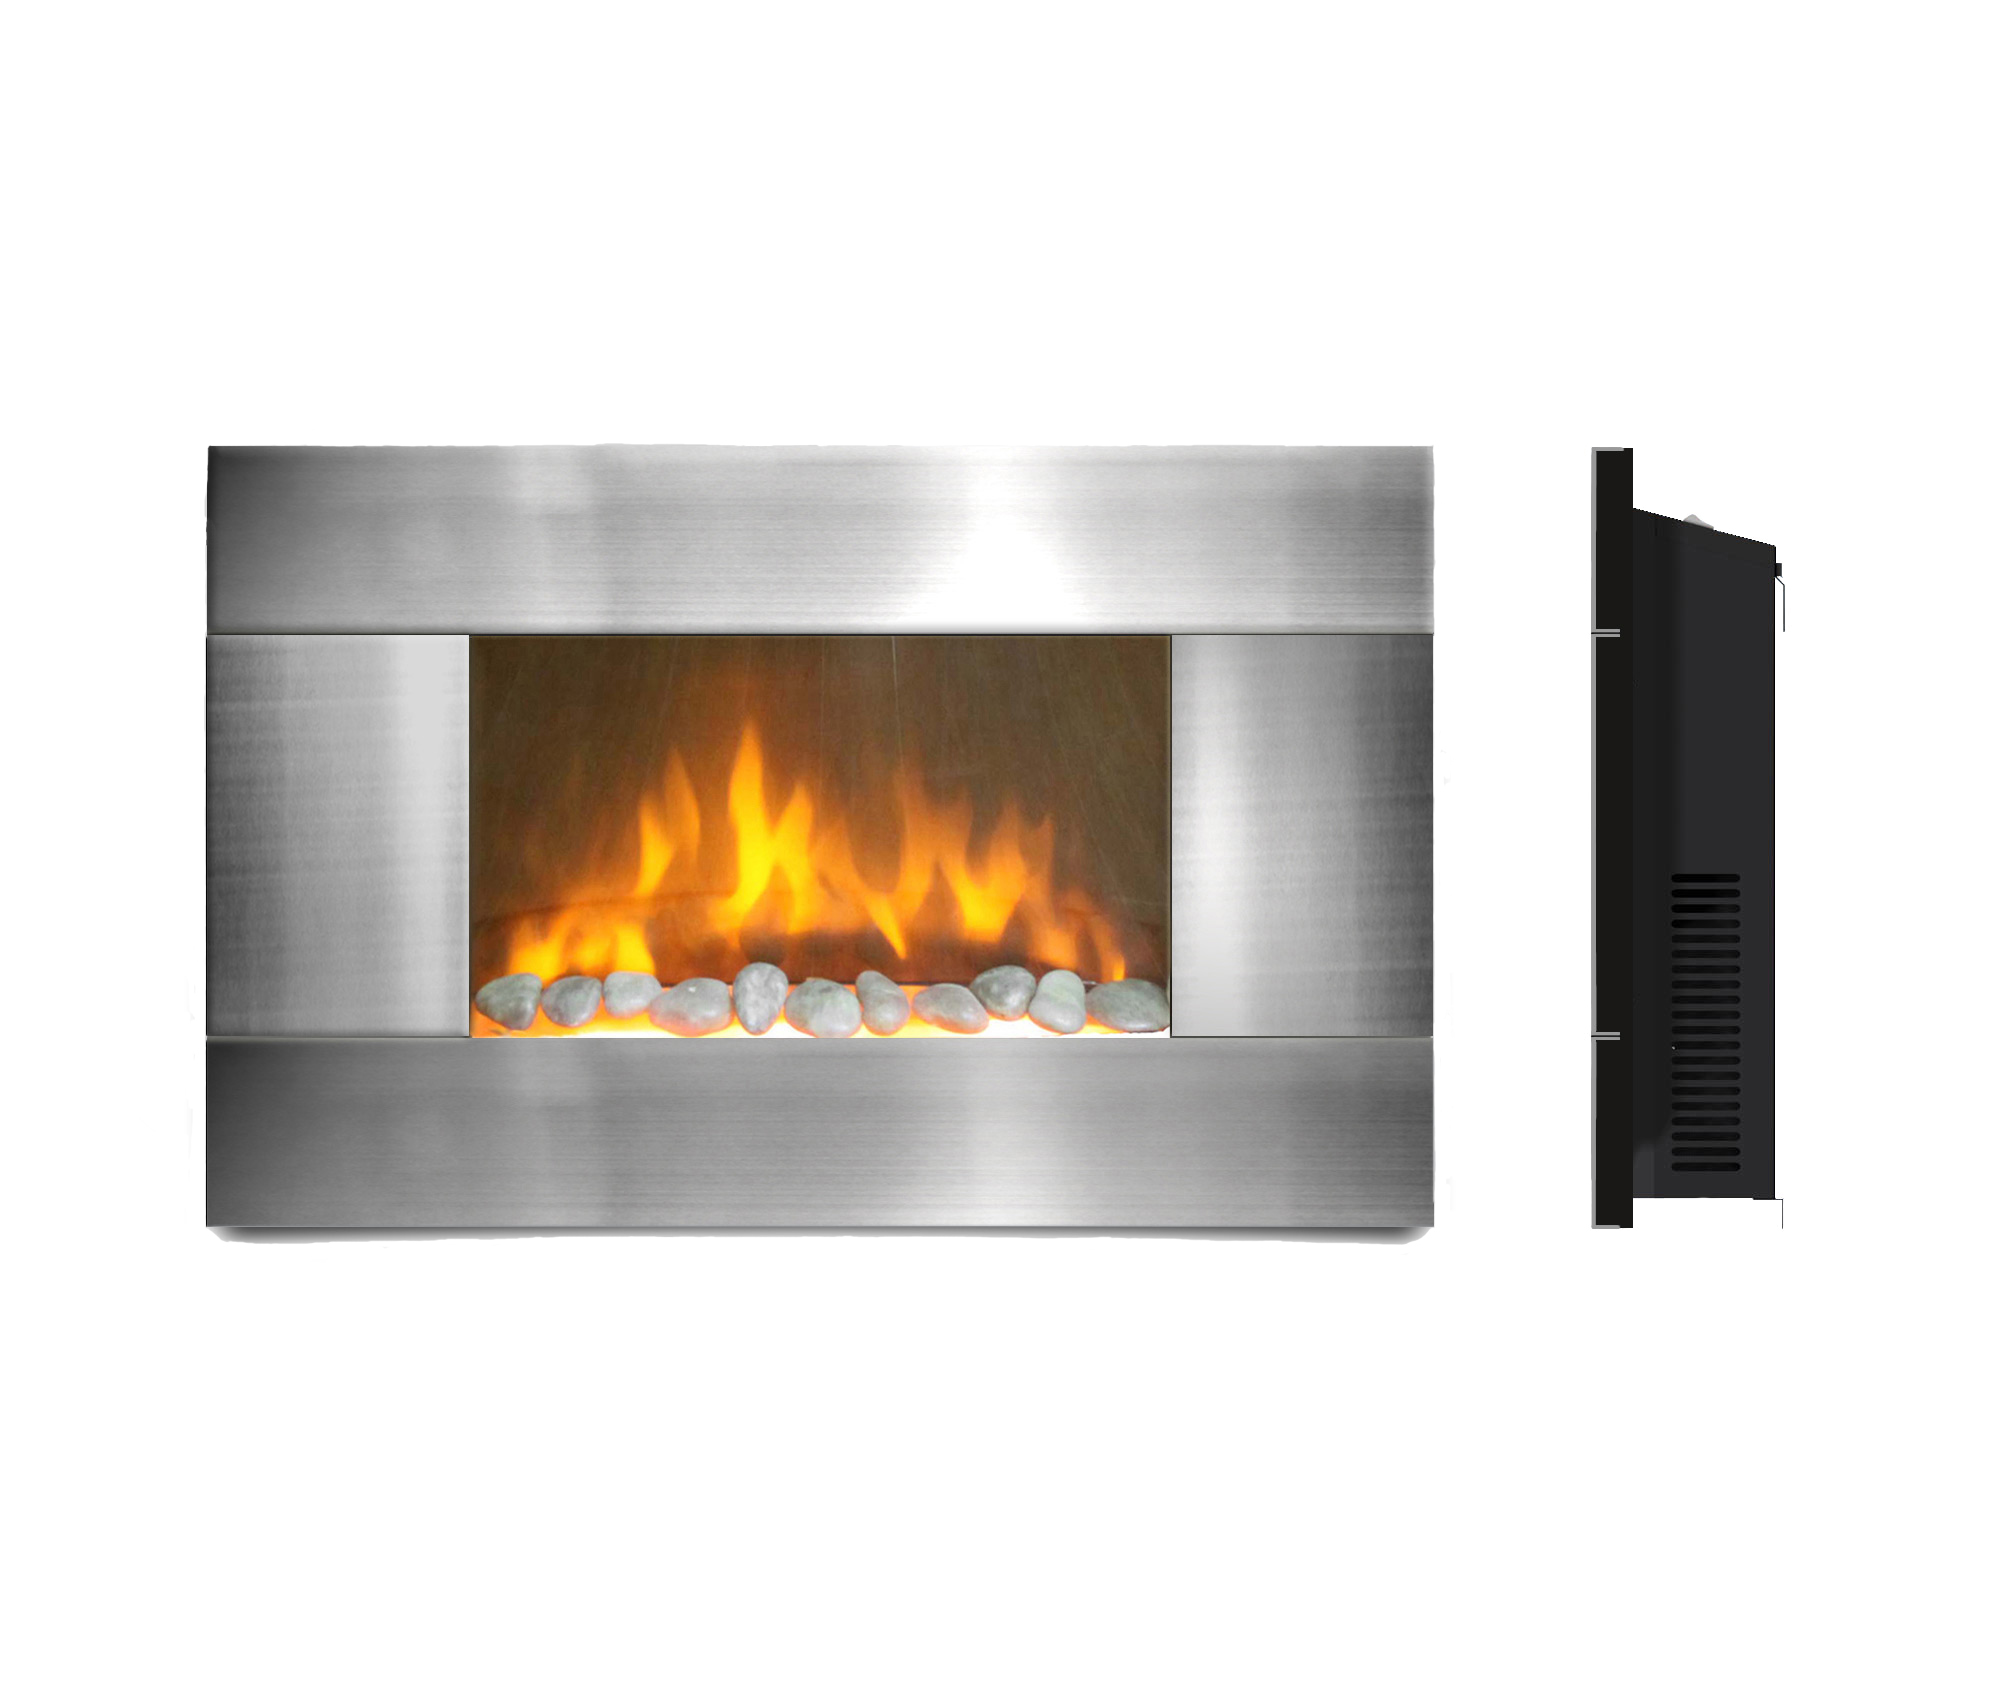 ambionair flame led wall mounted fireplace ef 1510 sl home